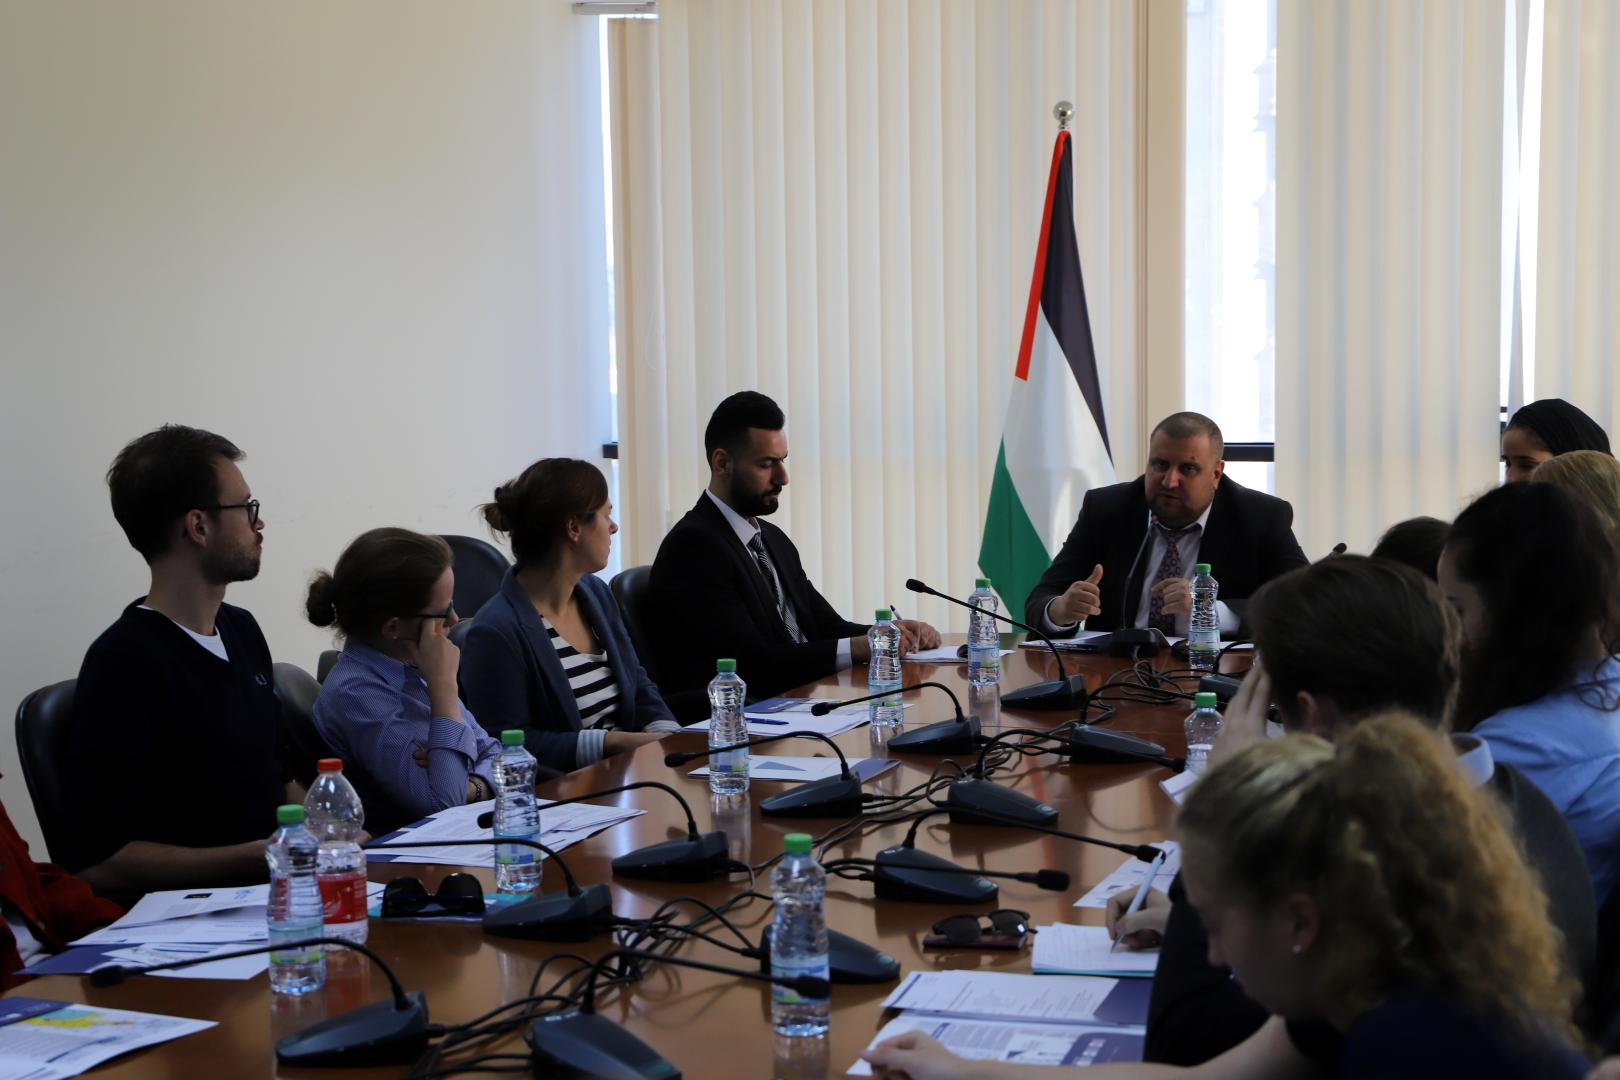 ELES KAS Delegation meets with Palestinian Ministry of Foreign Affairs in Ramallah